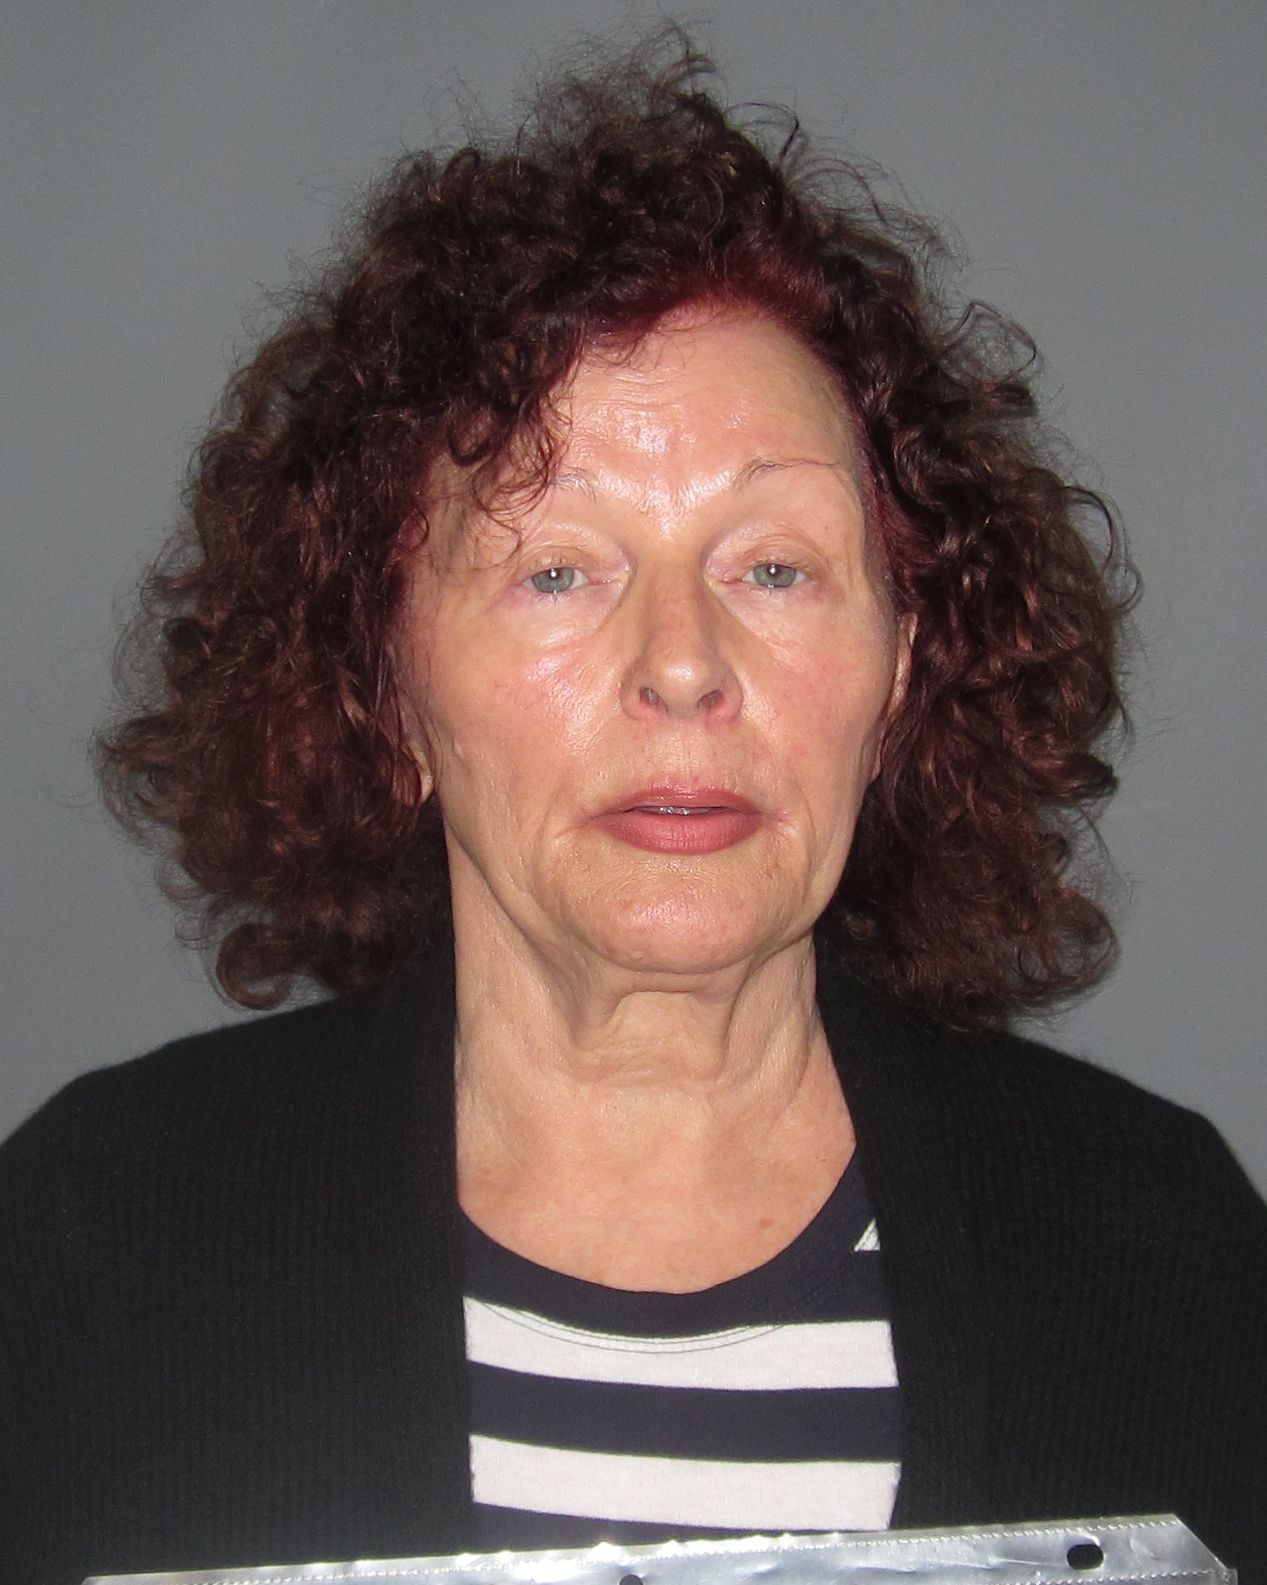 71 Year Old Grandma Arrested For Prostitution U.s - Business - Nigeria